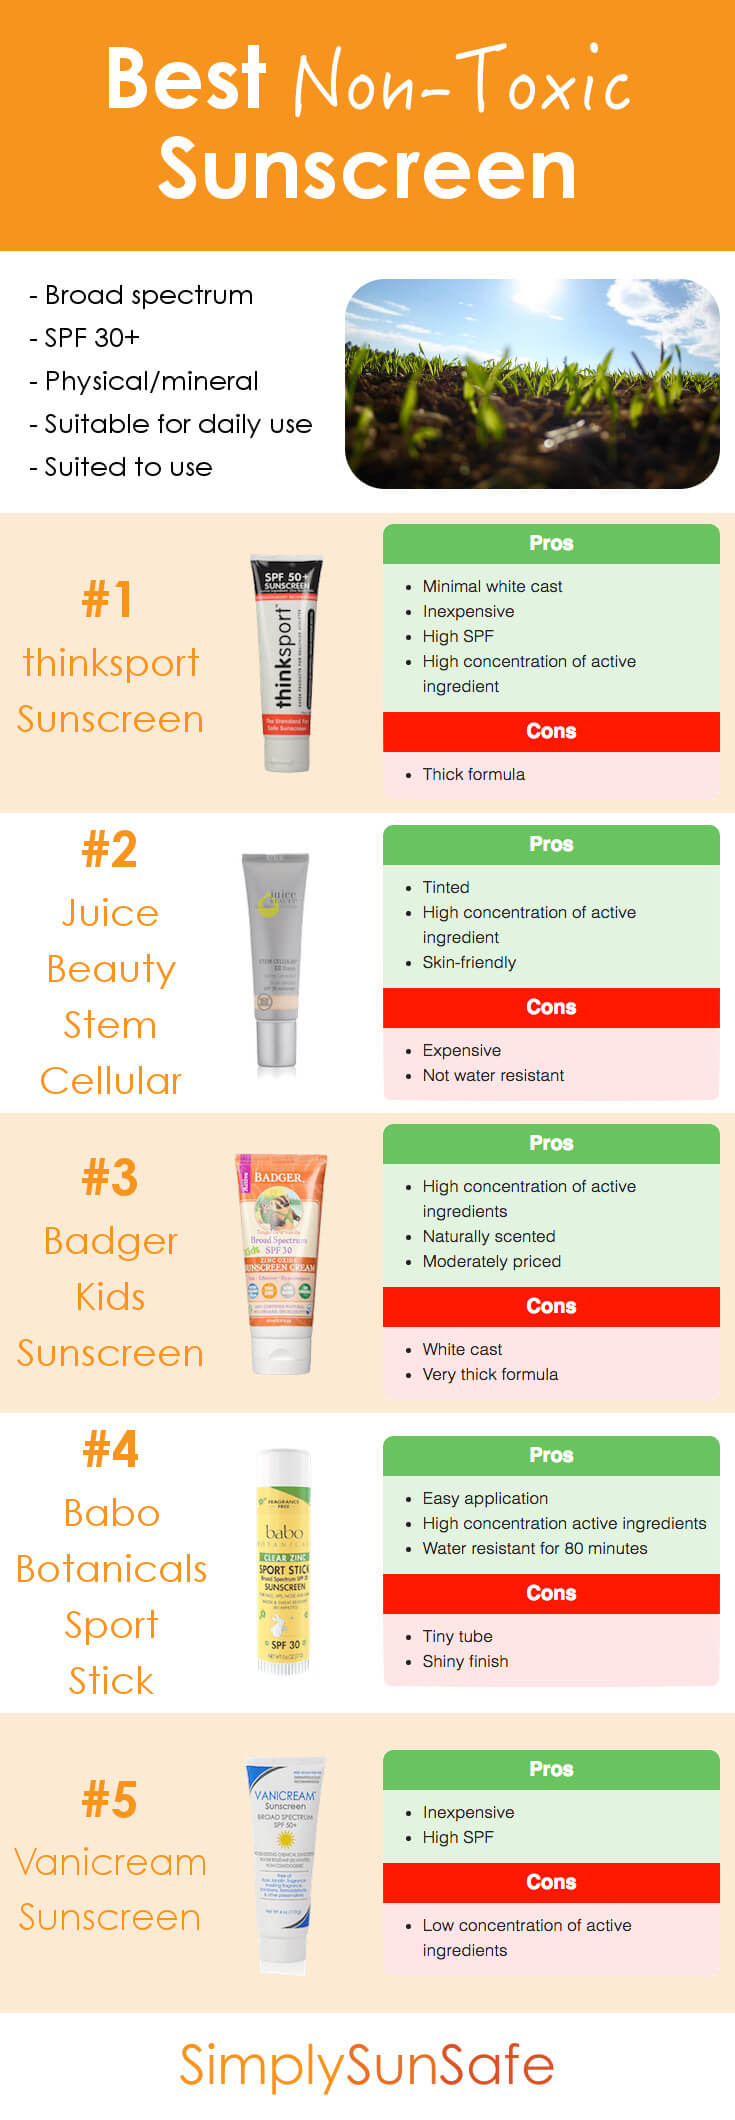 Best Non-Toxic Sunscreen Pinterest